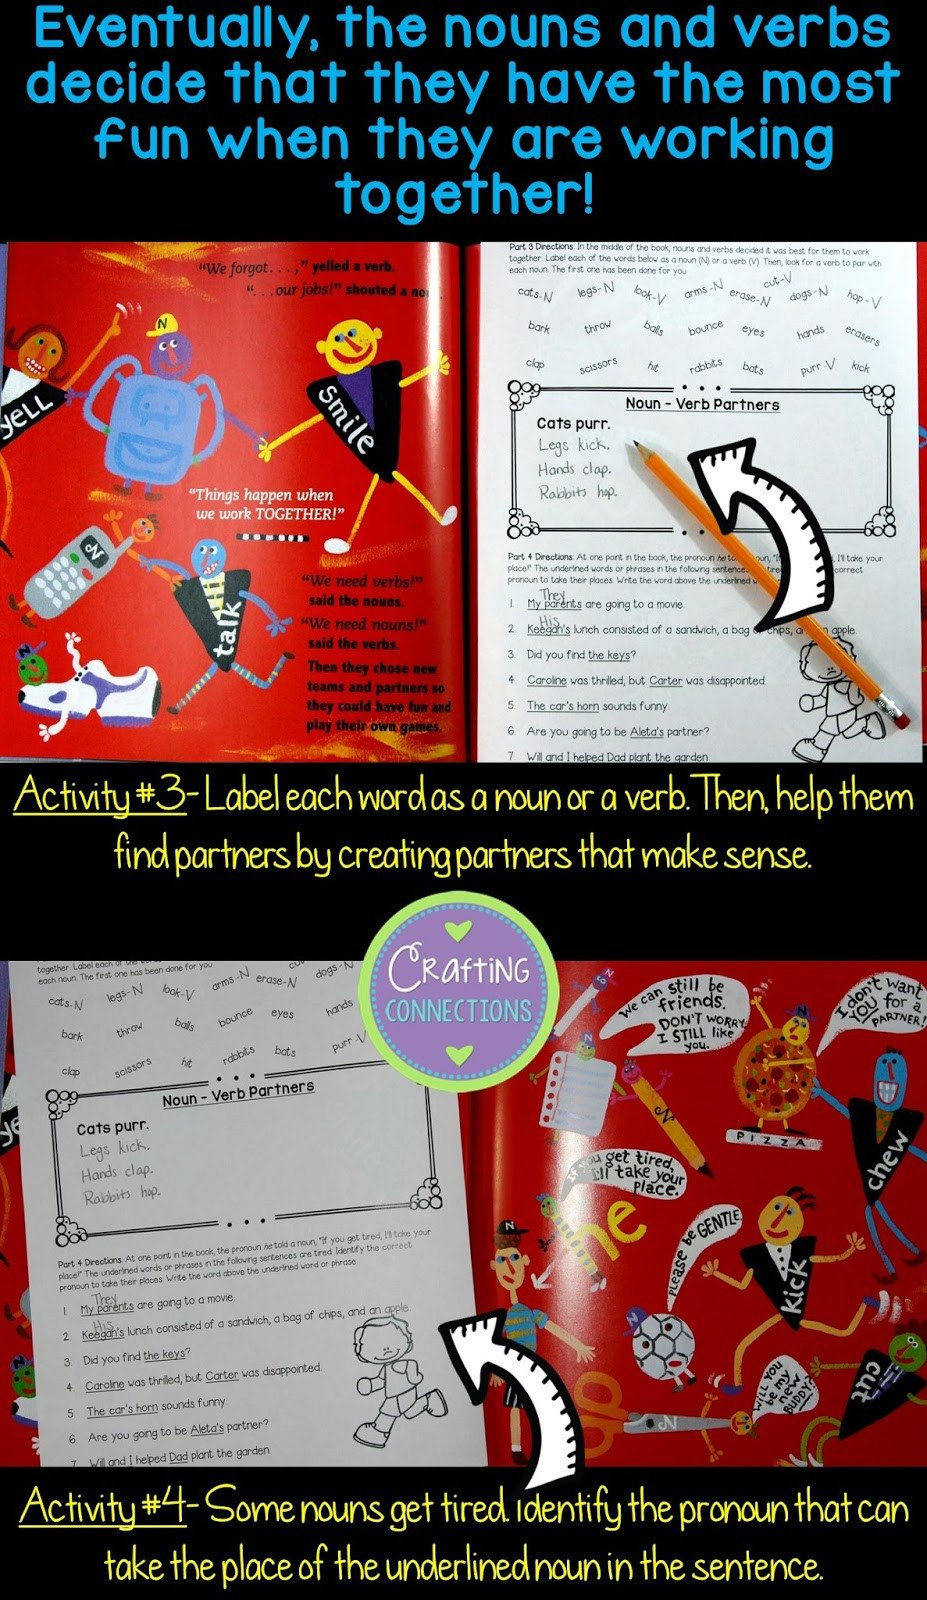 activities 3 and 4